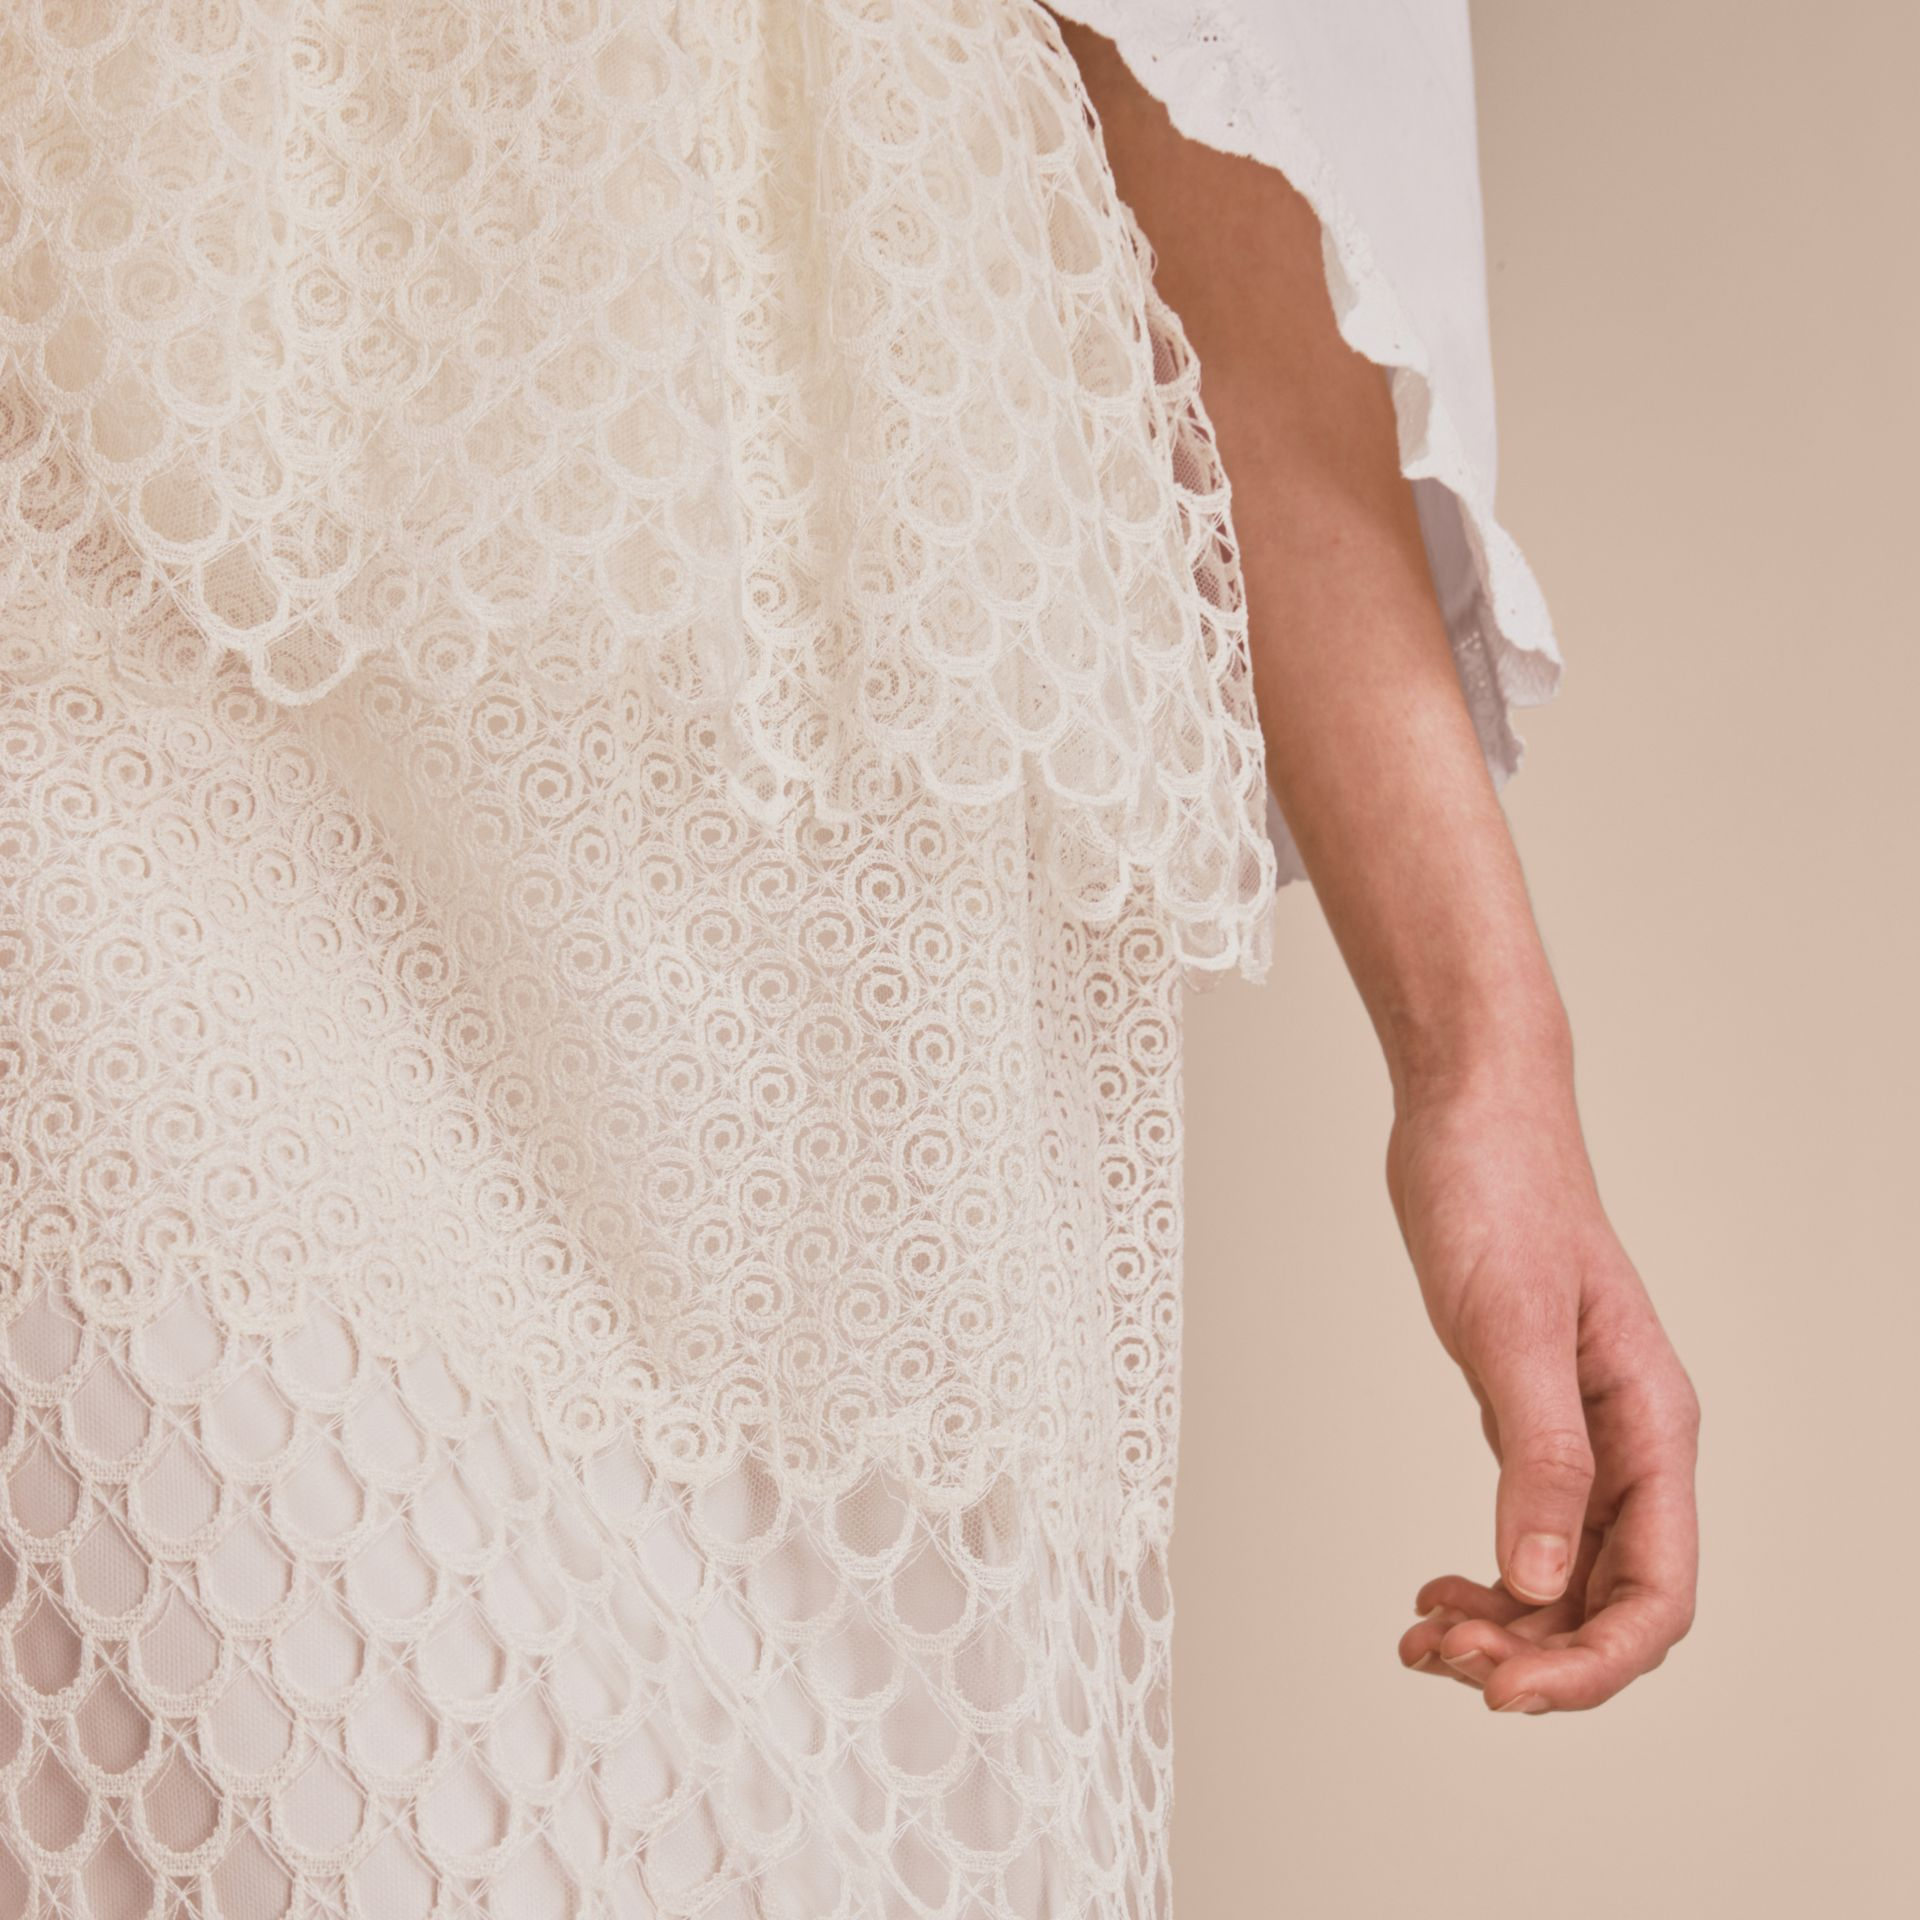 Macramé Lace Peplum Skirt in Natural White - Women | Burberry - gallery image 5